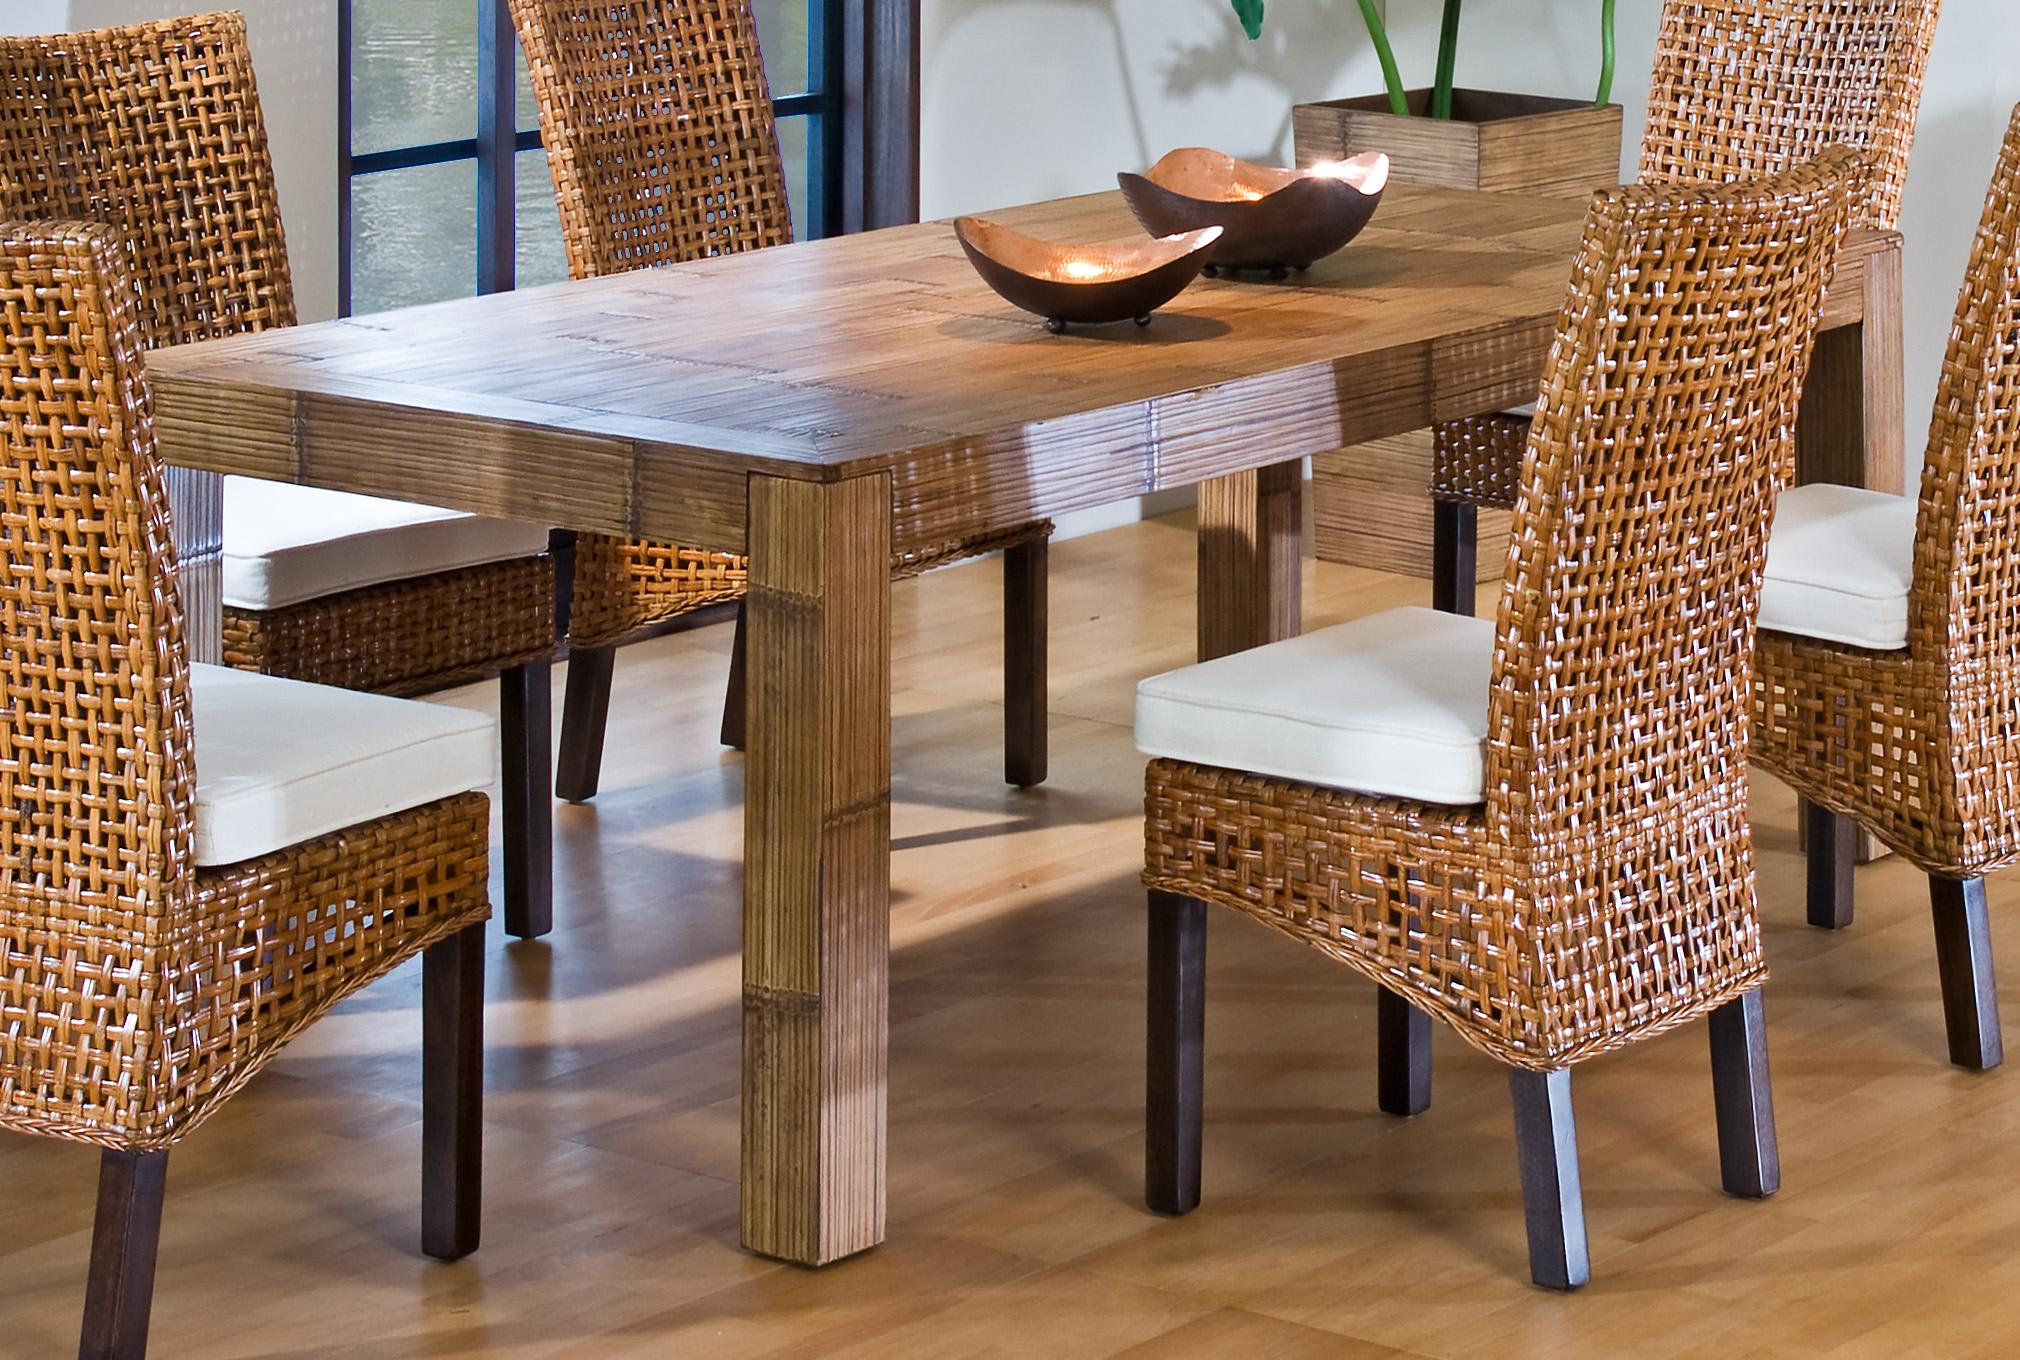 wicker dining chairs and table